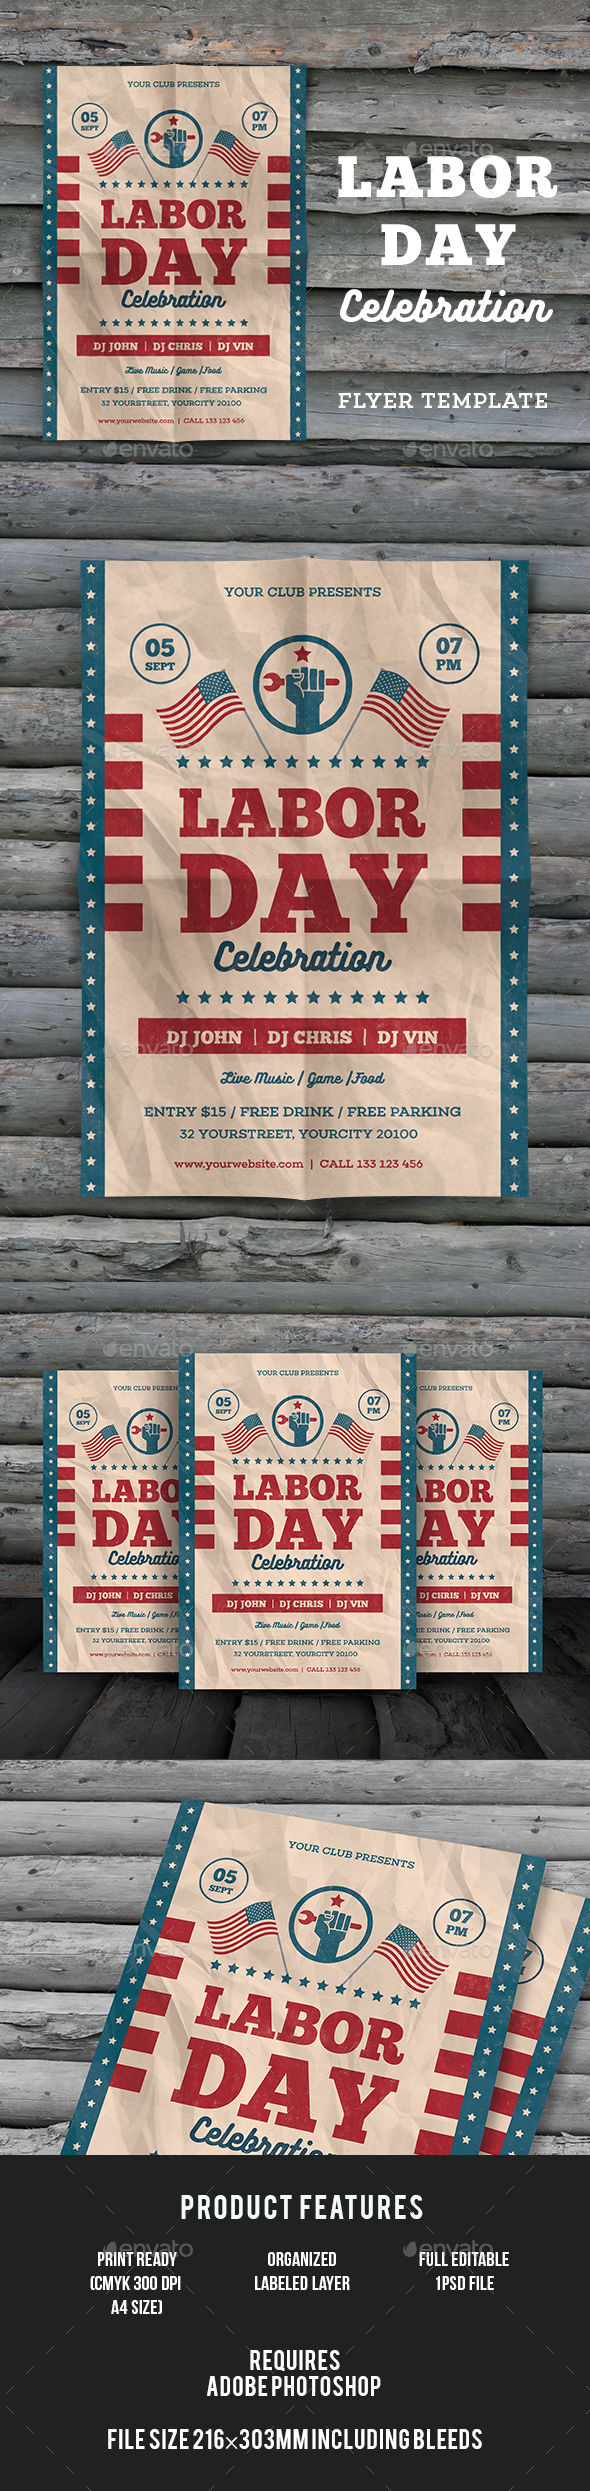 Labor Day Flyer by Infinite78910 (Labor Day party flyer)